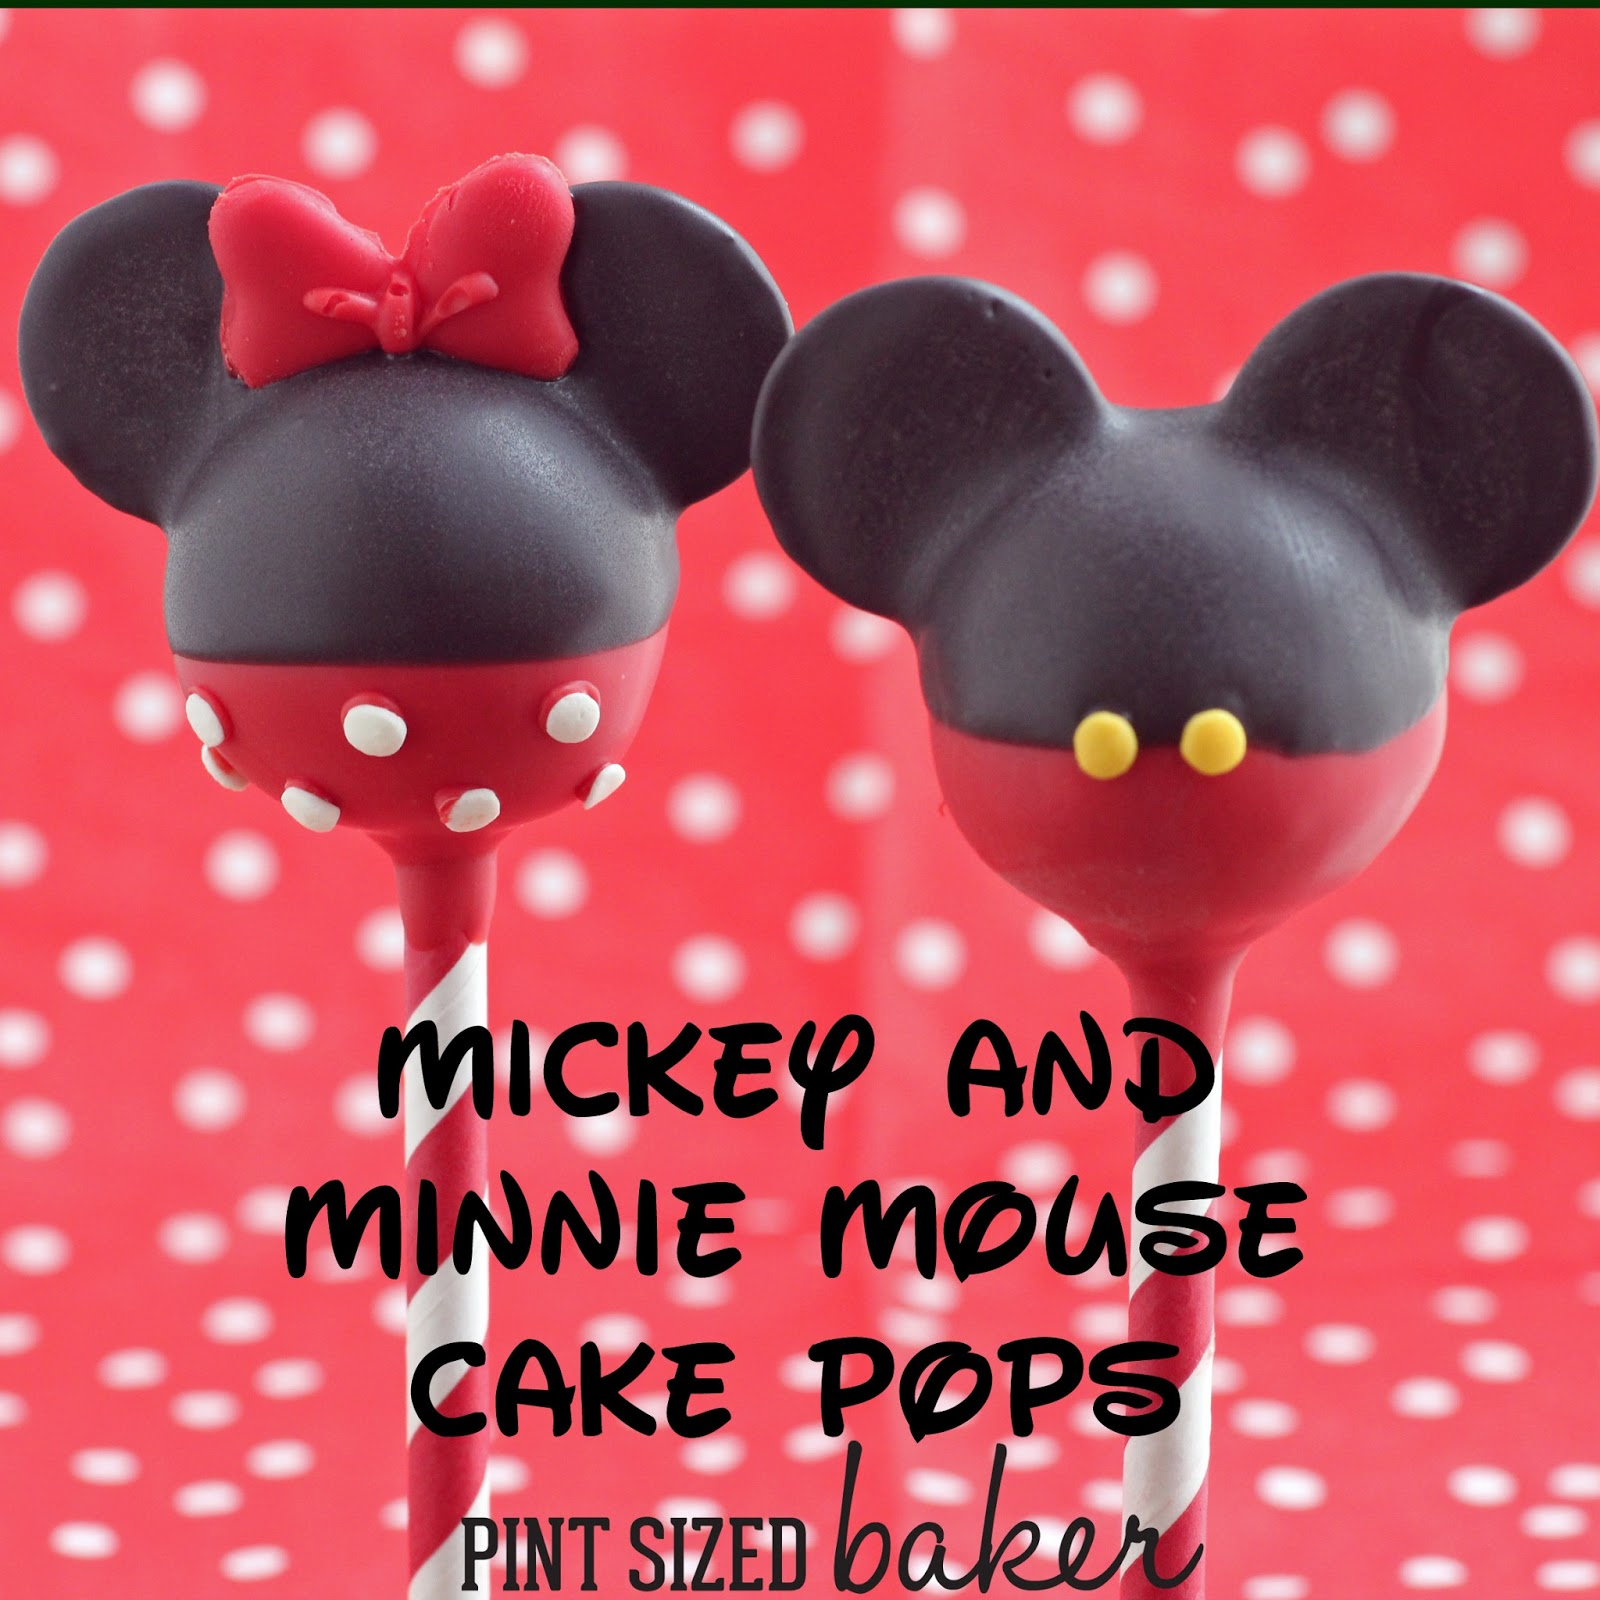 How To Make Pink Minnie Mouse Cake Pops